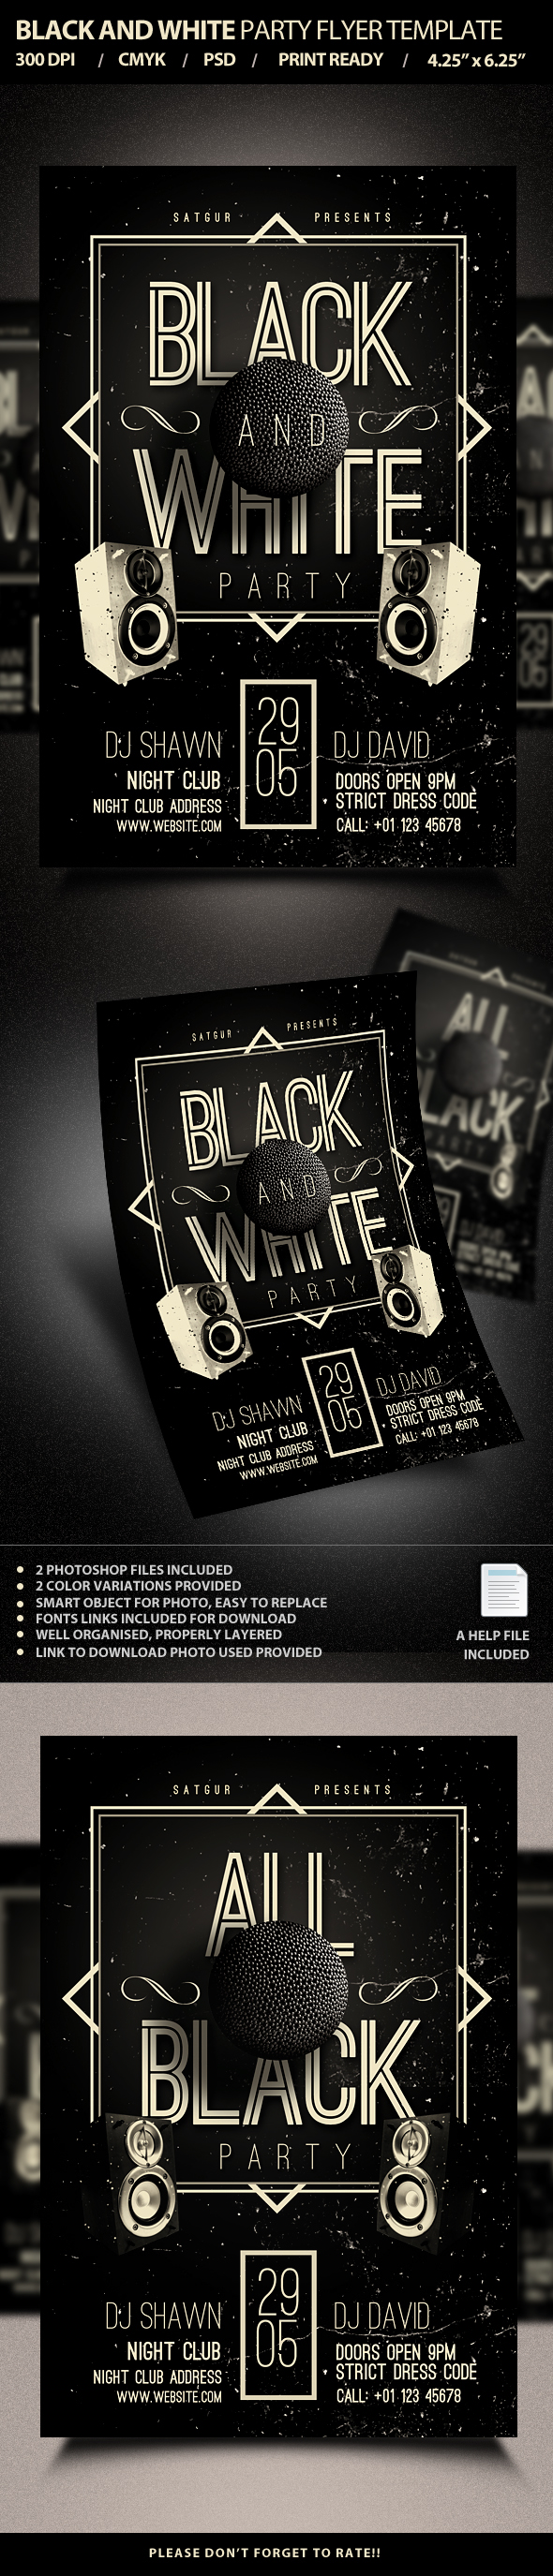 Black and White Party Flyer Template PSD on Behance